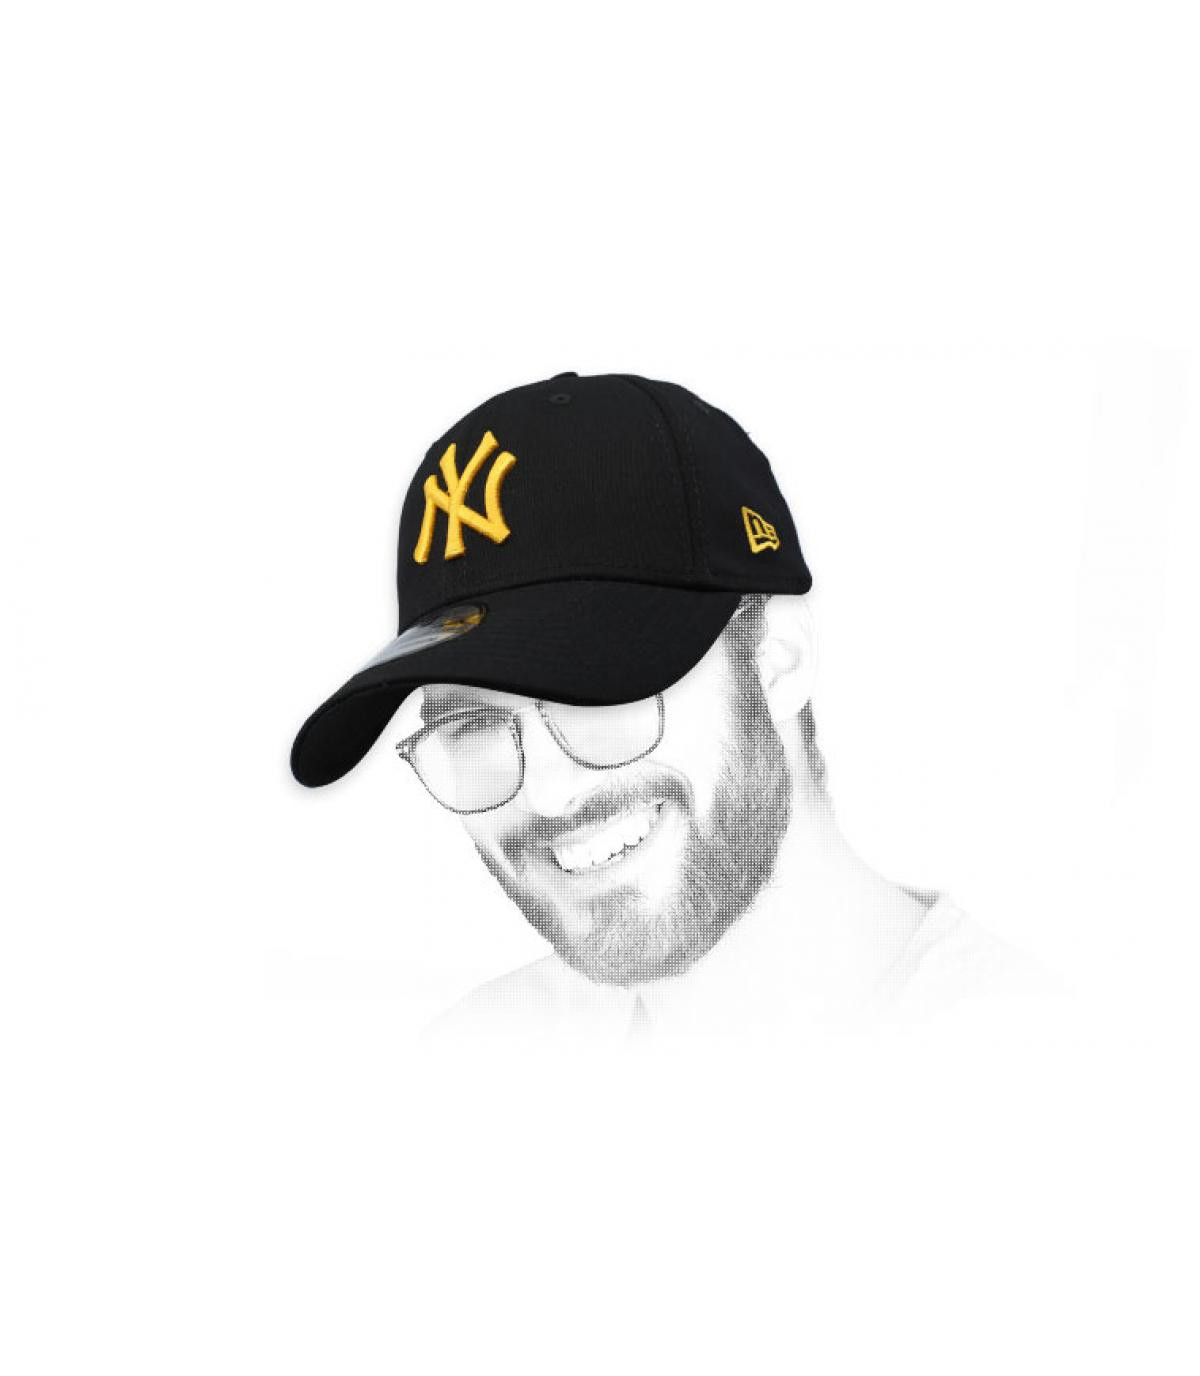 casquette NY noir or